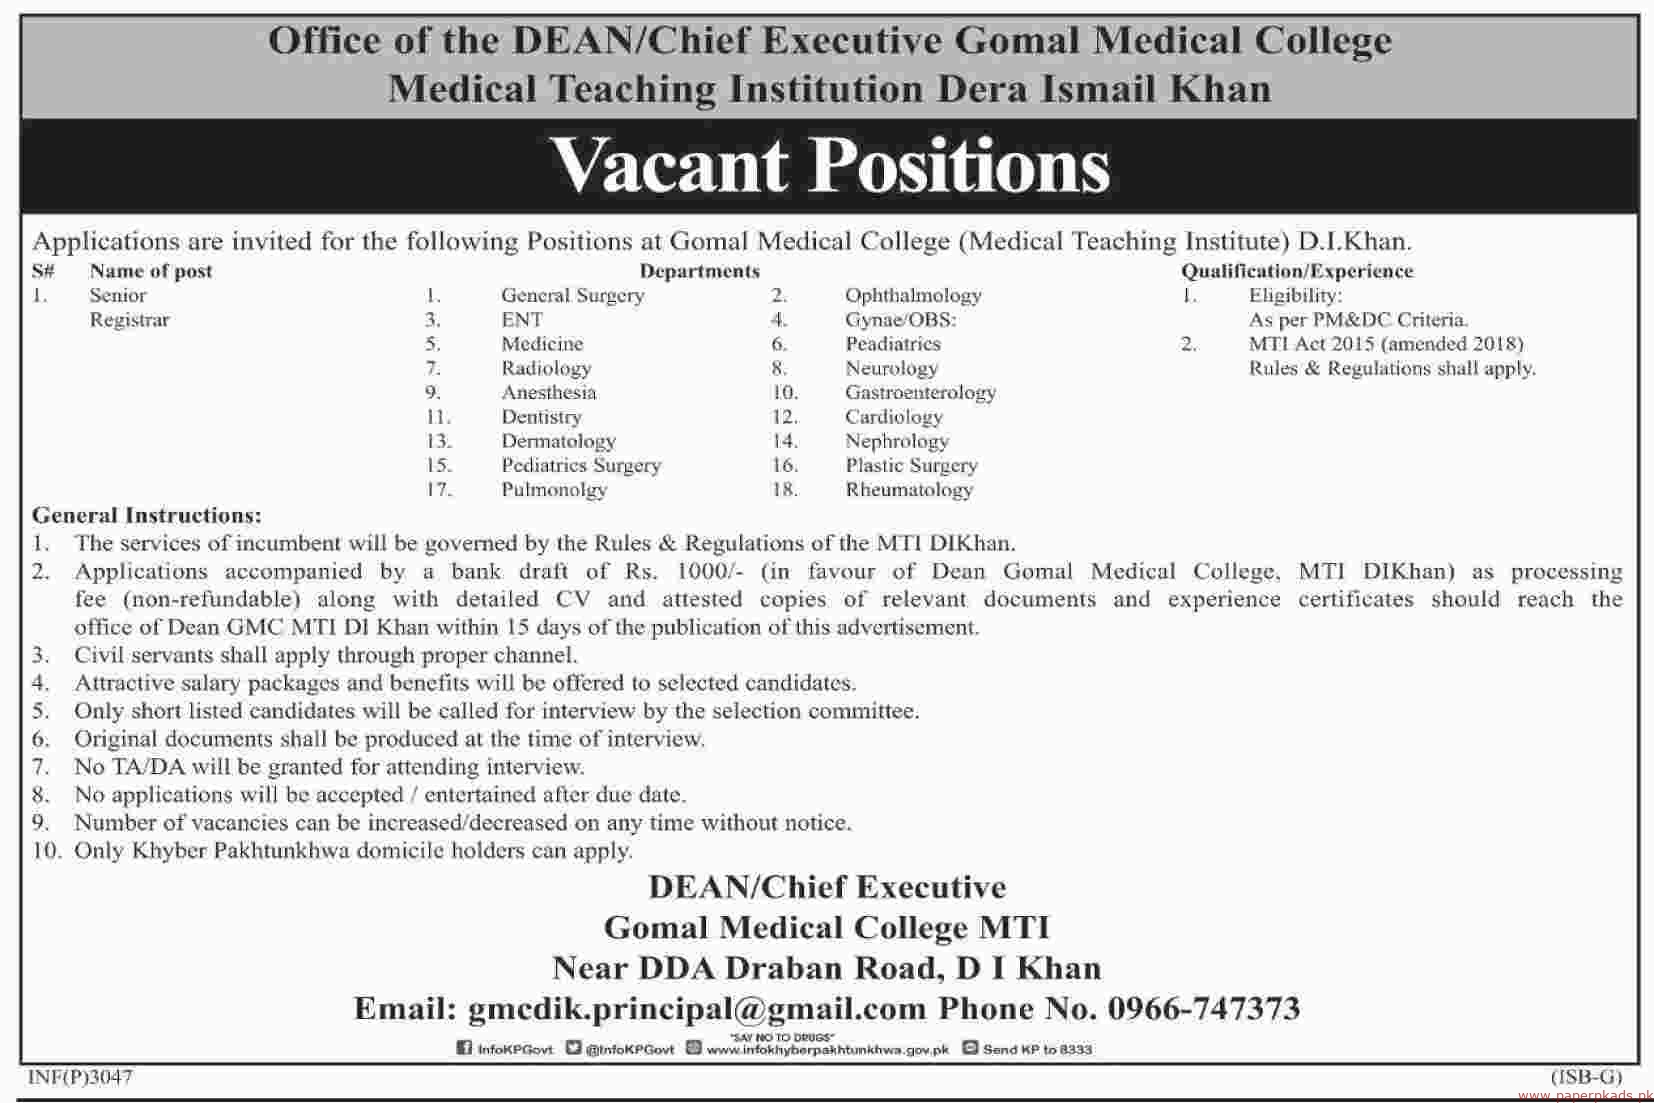 Medical Teaching Institution Dera Ismail Khan Jobs 2019 Latest